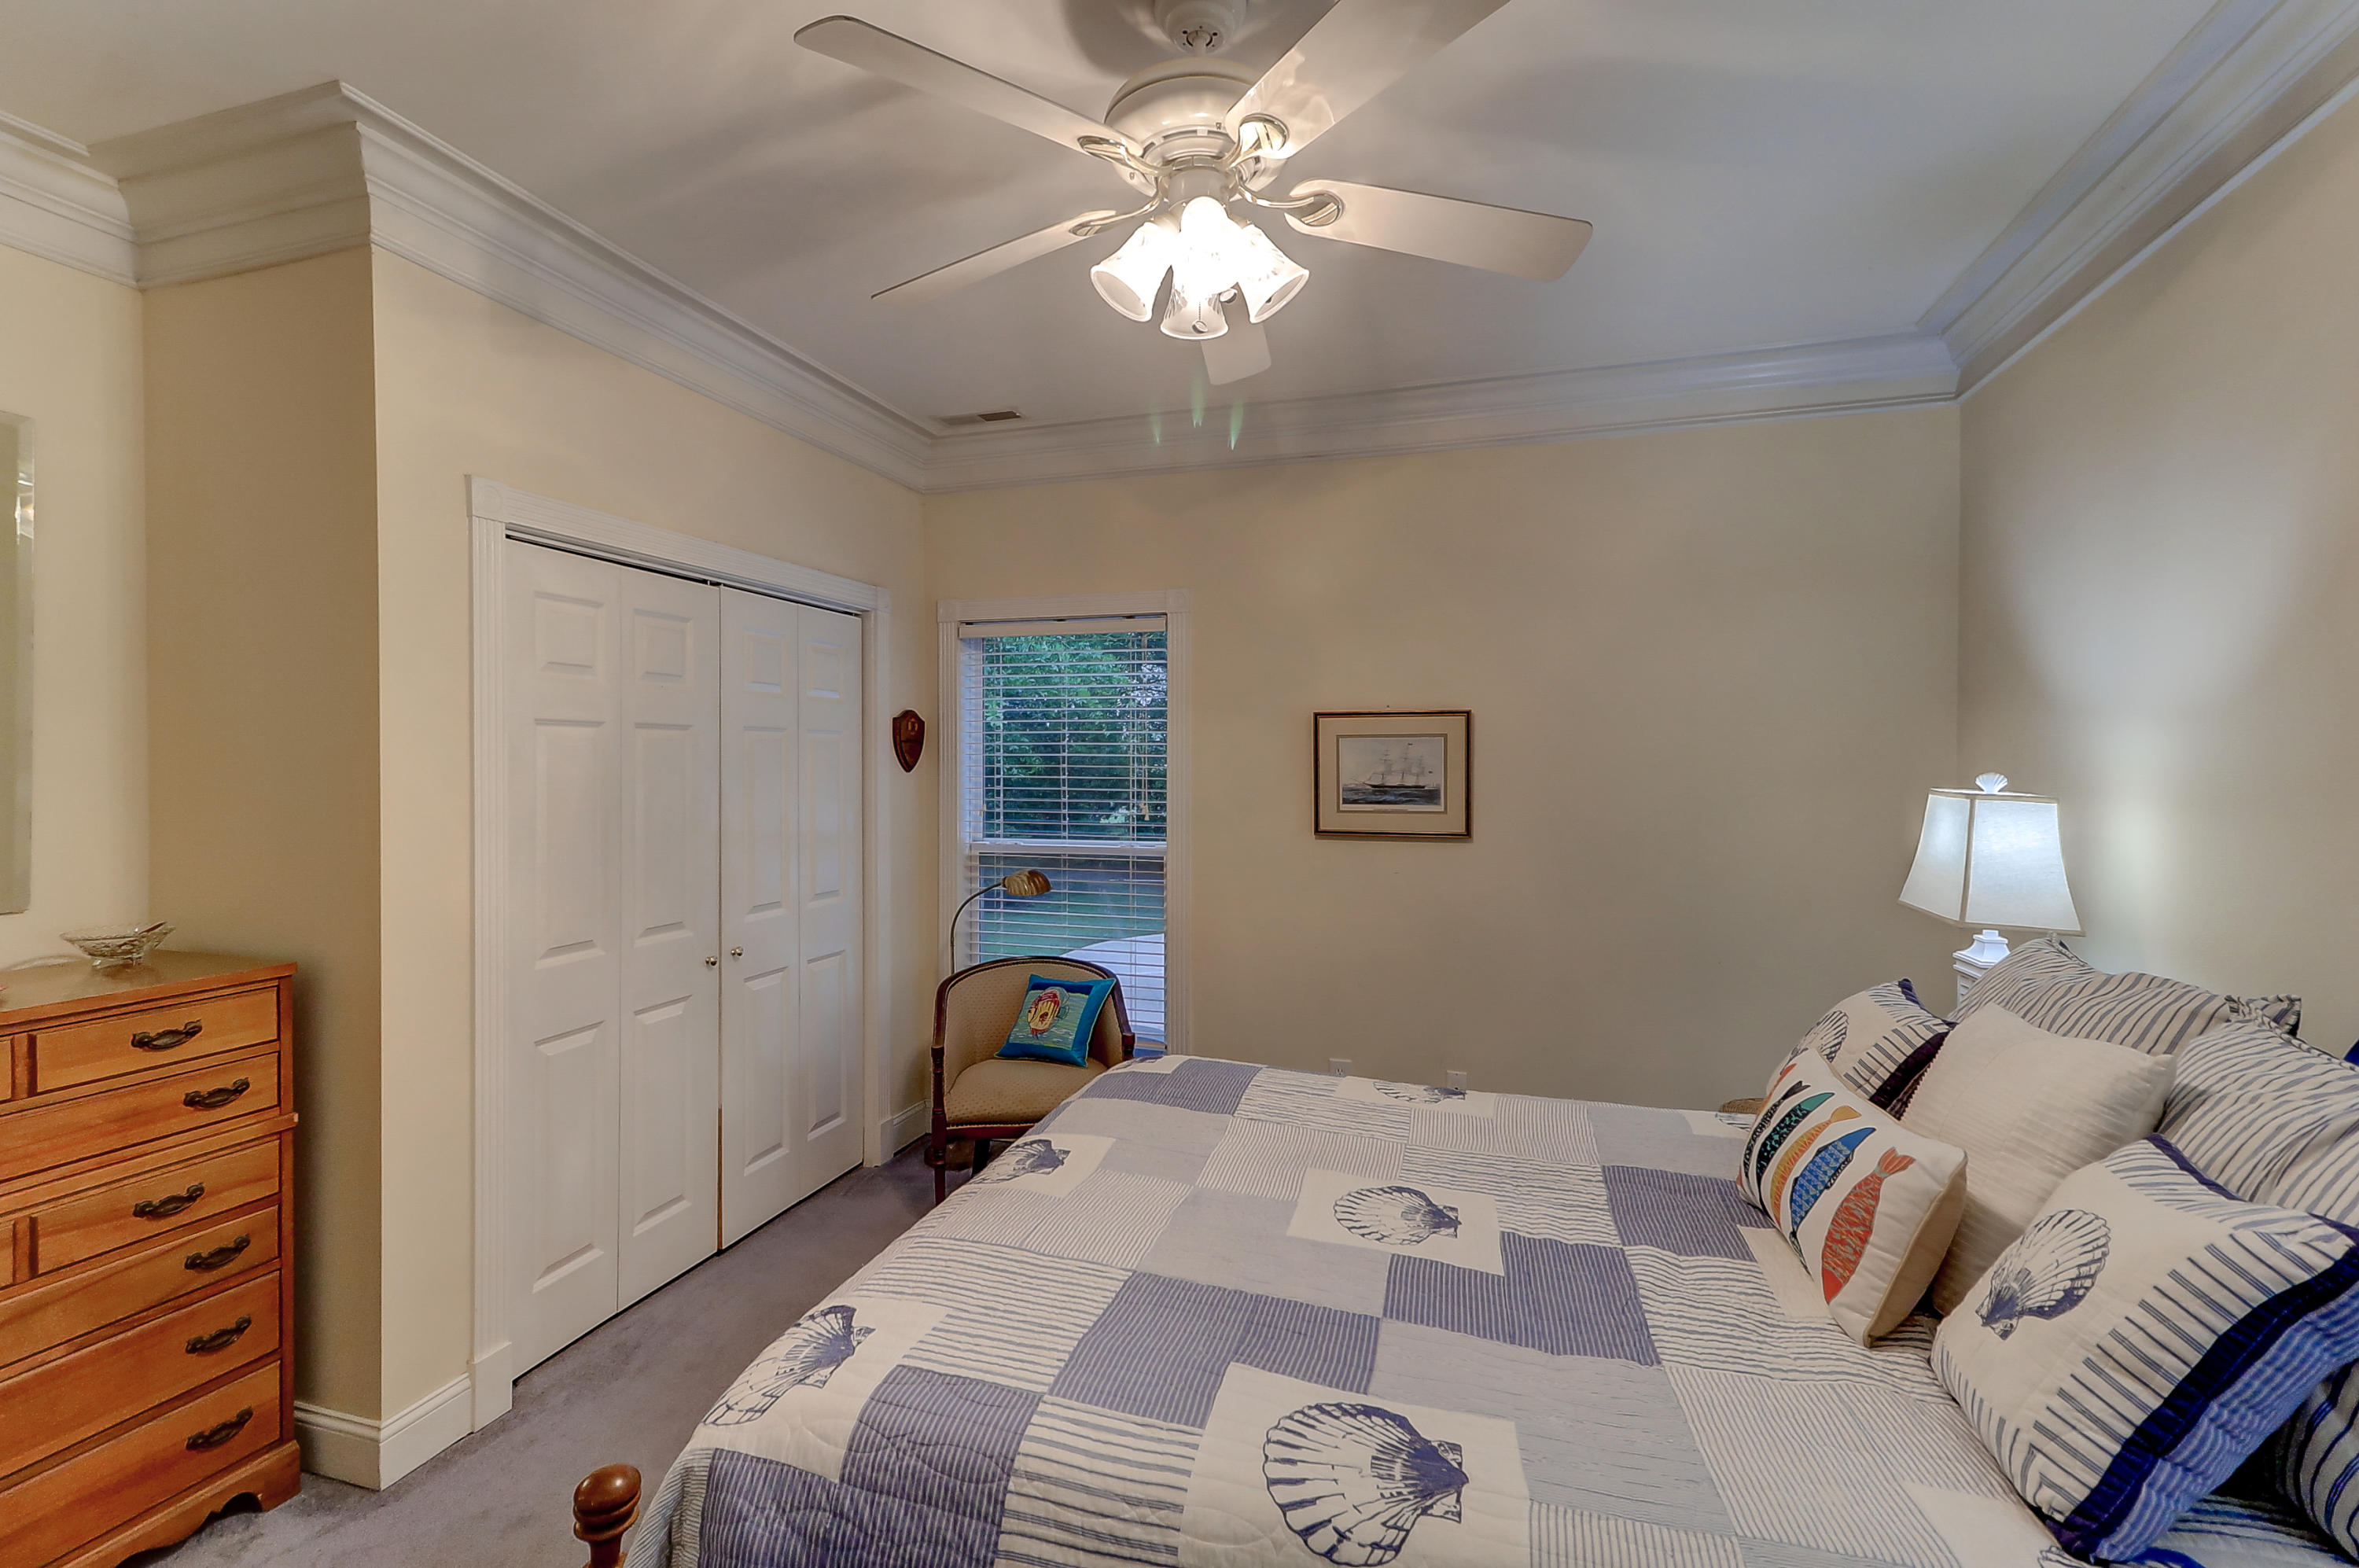 Cainhoy Landing Homes For Sale - 122 Cainhoy Landing, Charleston, SC - 31